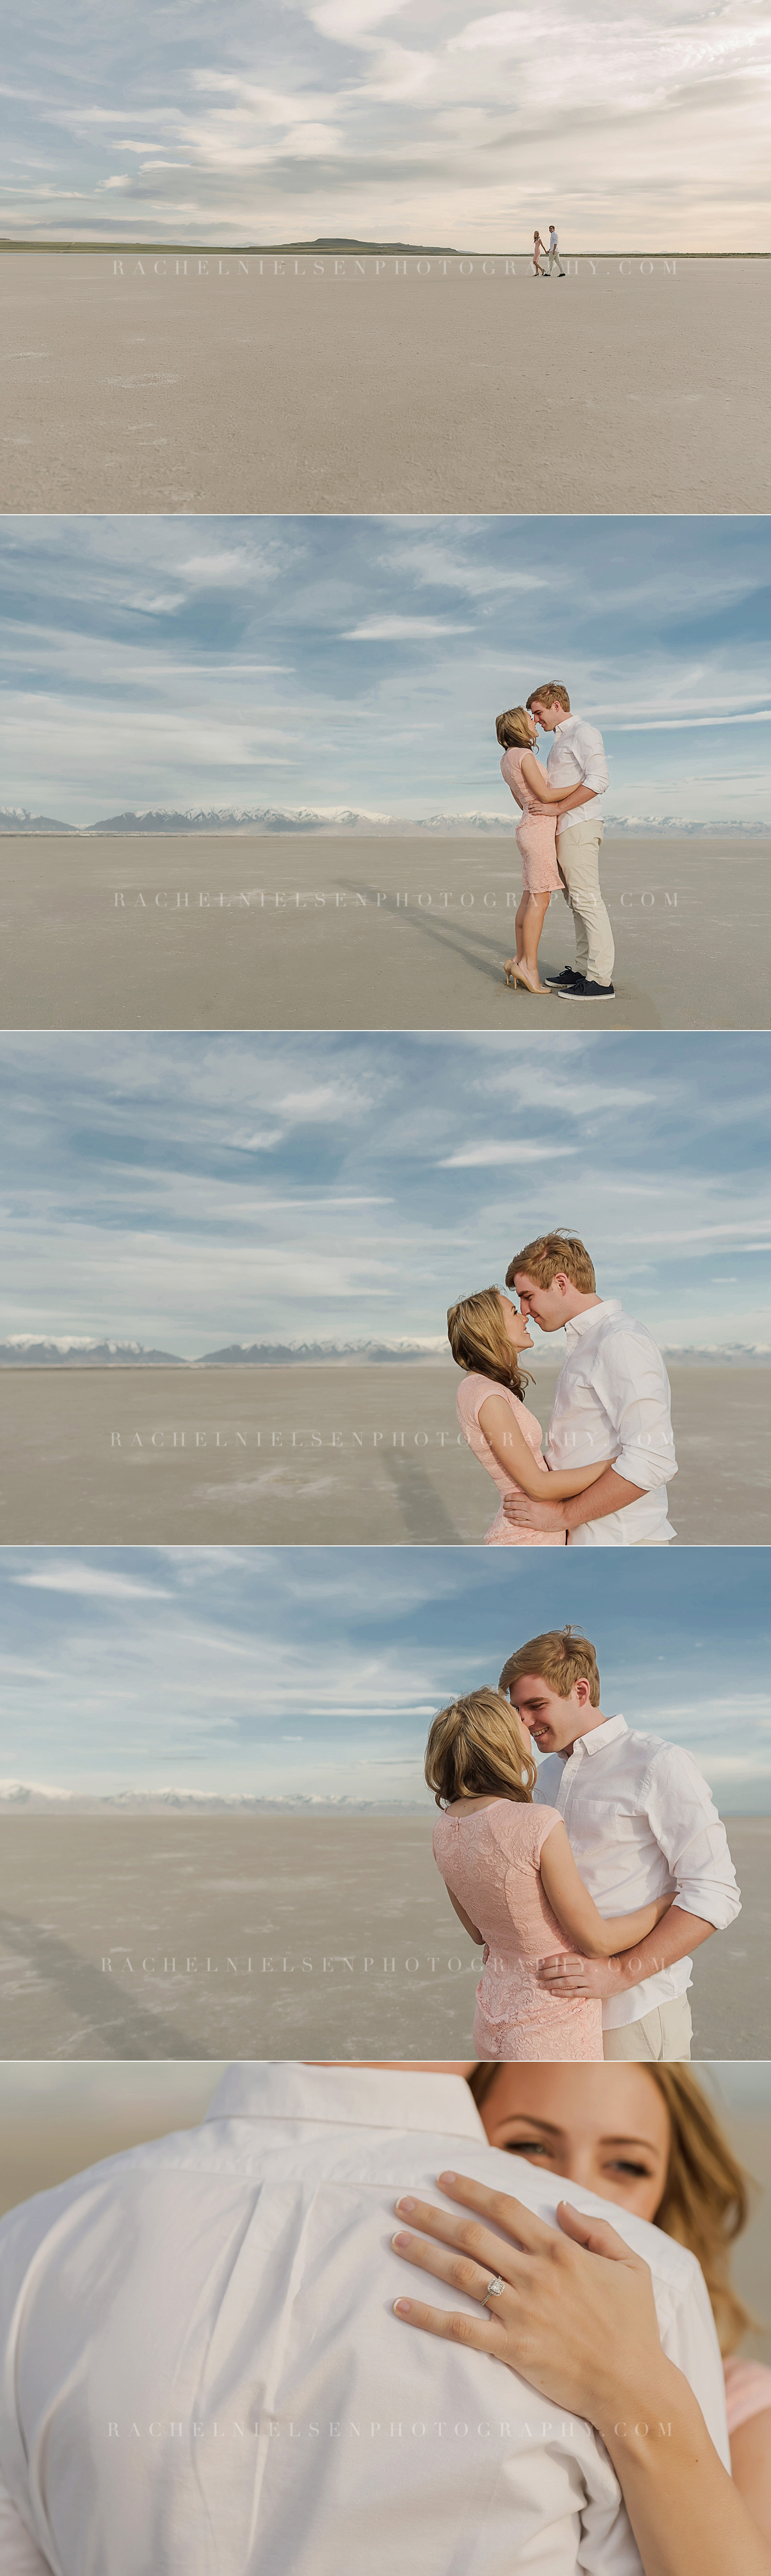 engagement-photos-Salt-Lake-Utah-photos-couple-1